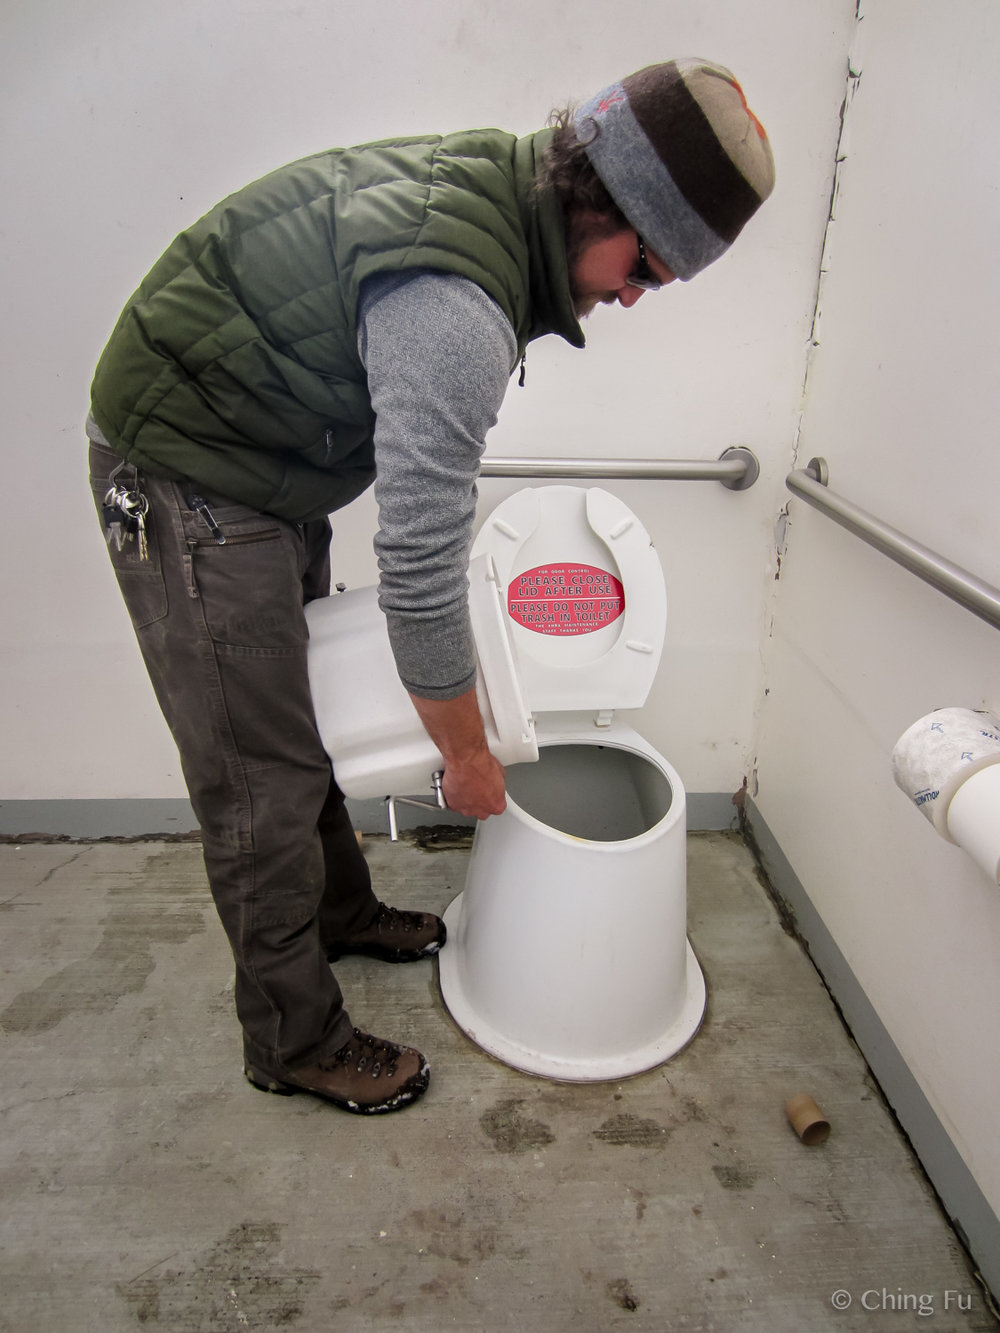 Emptying out our composting toilet at a trailhead pit toilet.